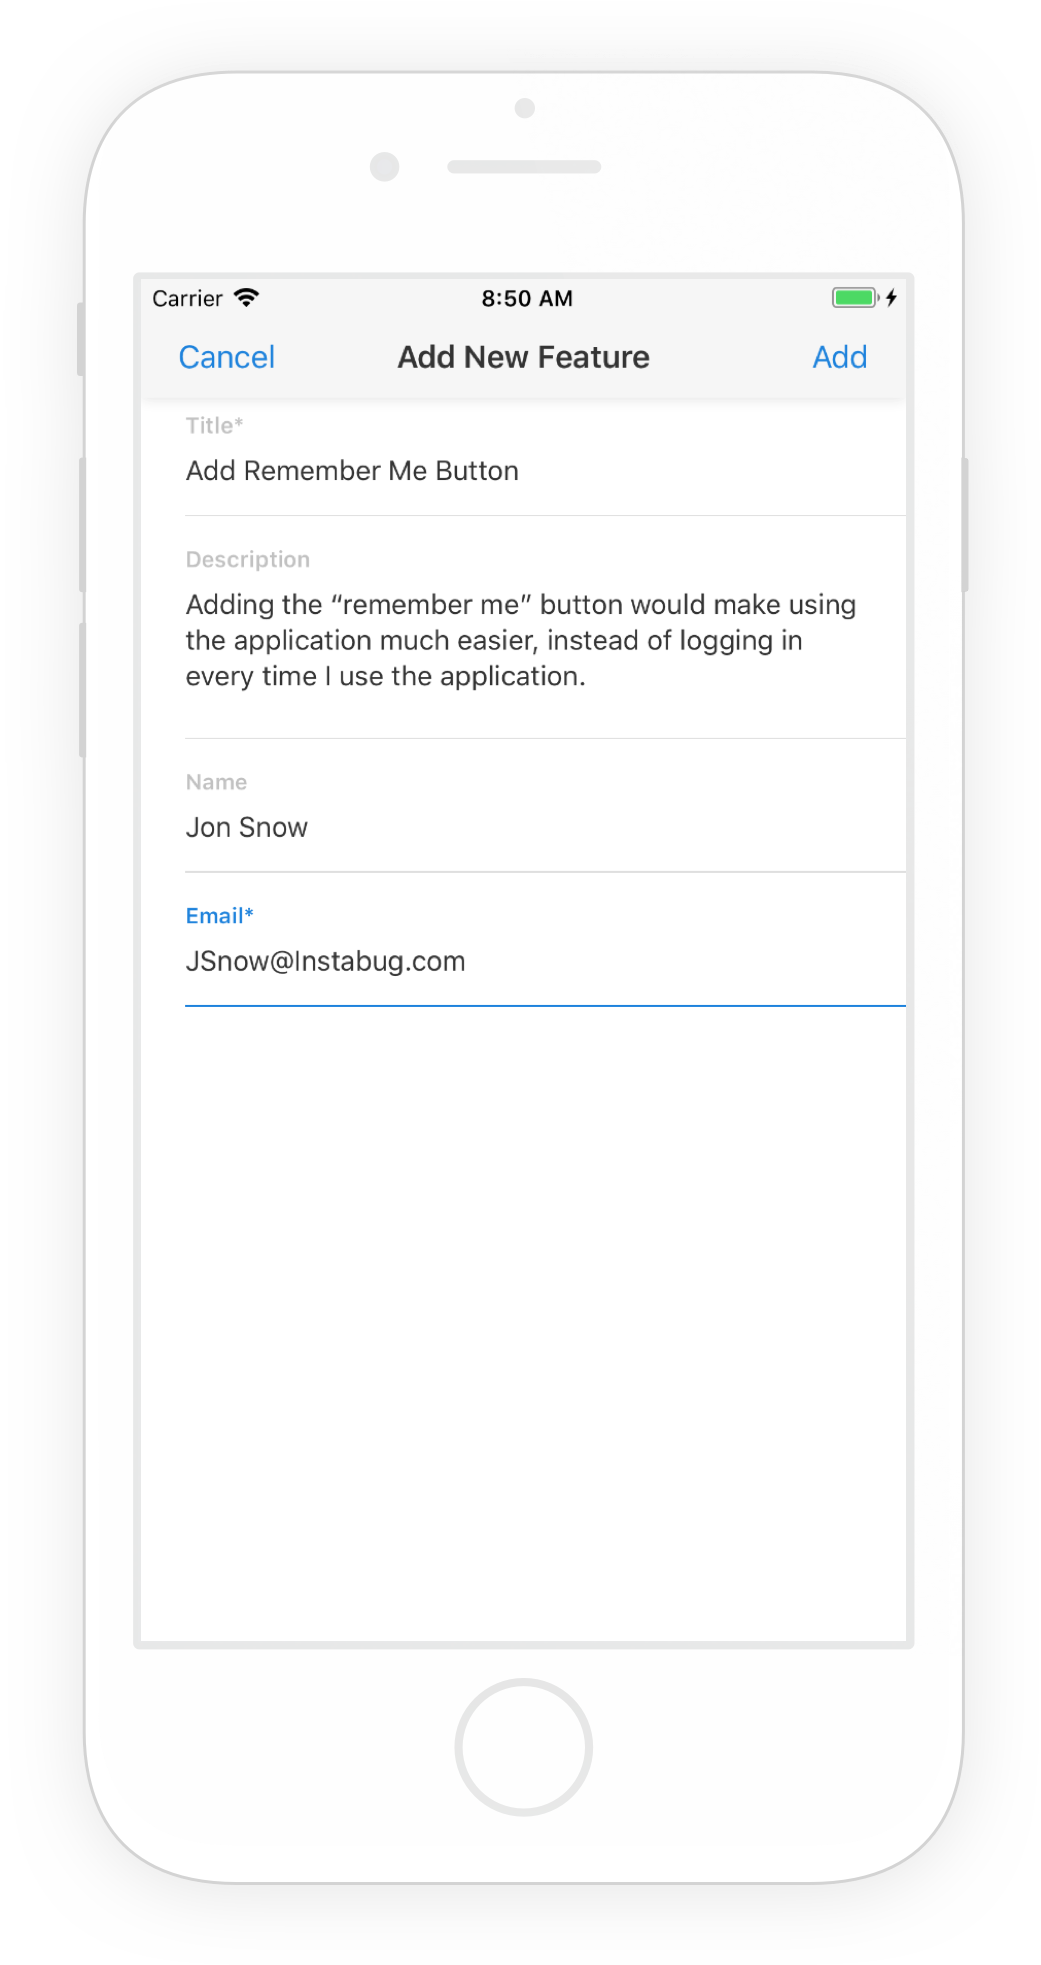 This is what the in-app feature request submission form looks like.